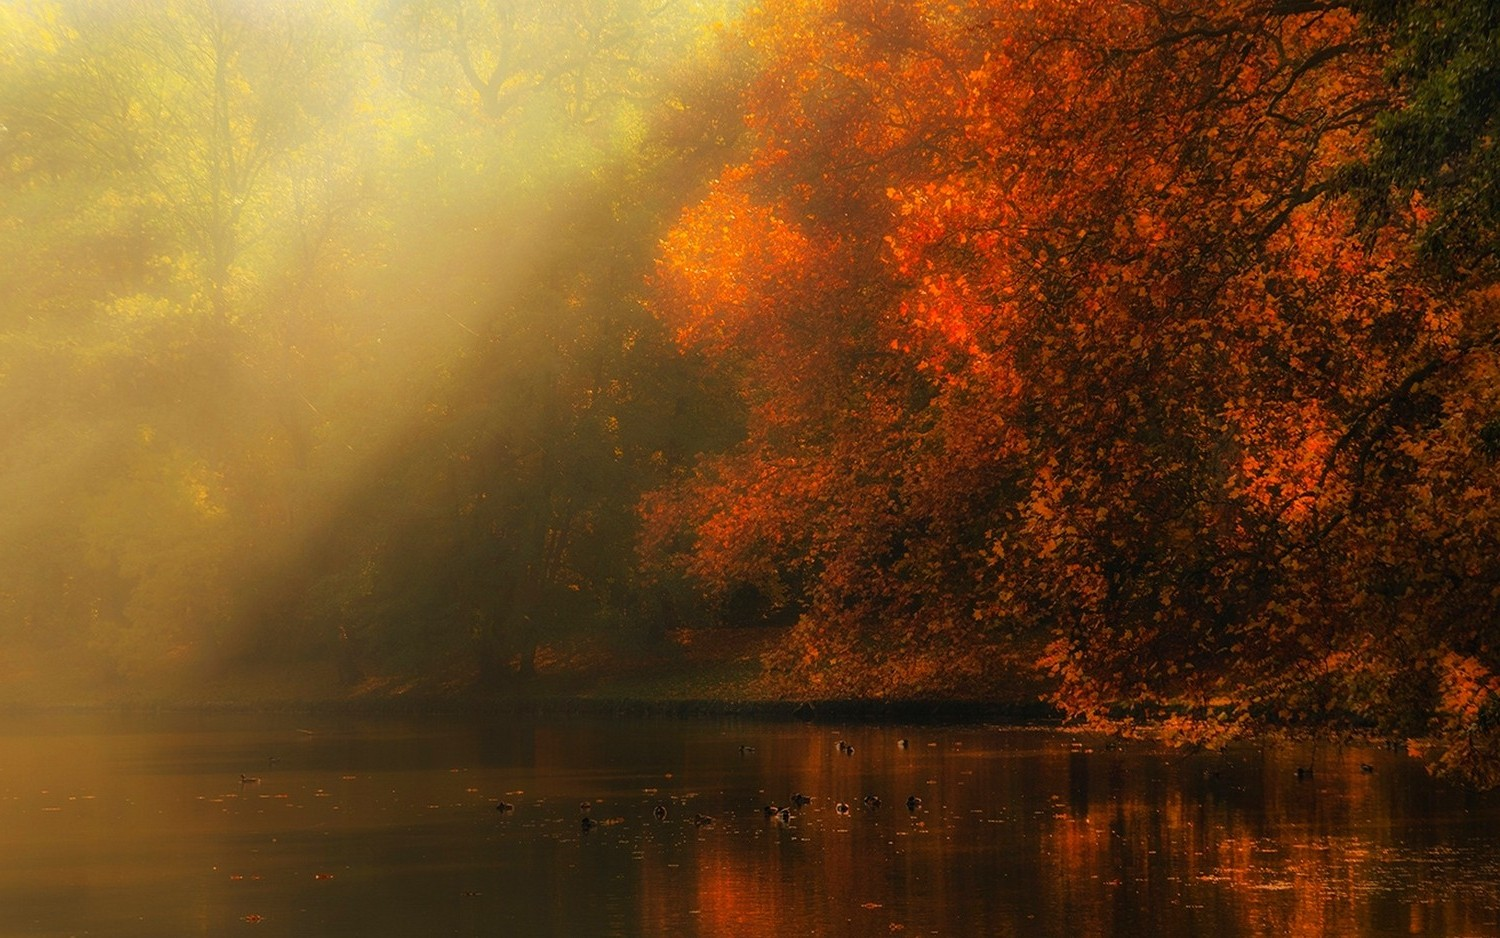 3d River Wallpaper Nature Landscape River Forest Fall Mist Sun Rays